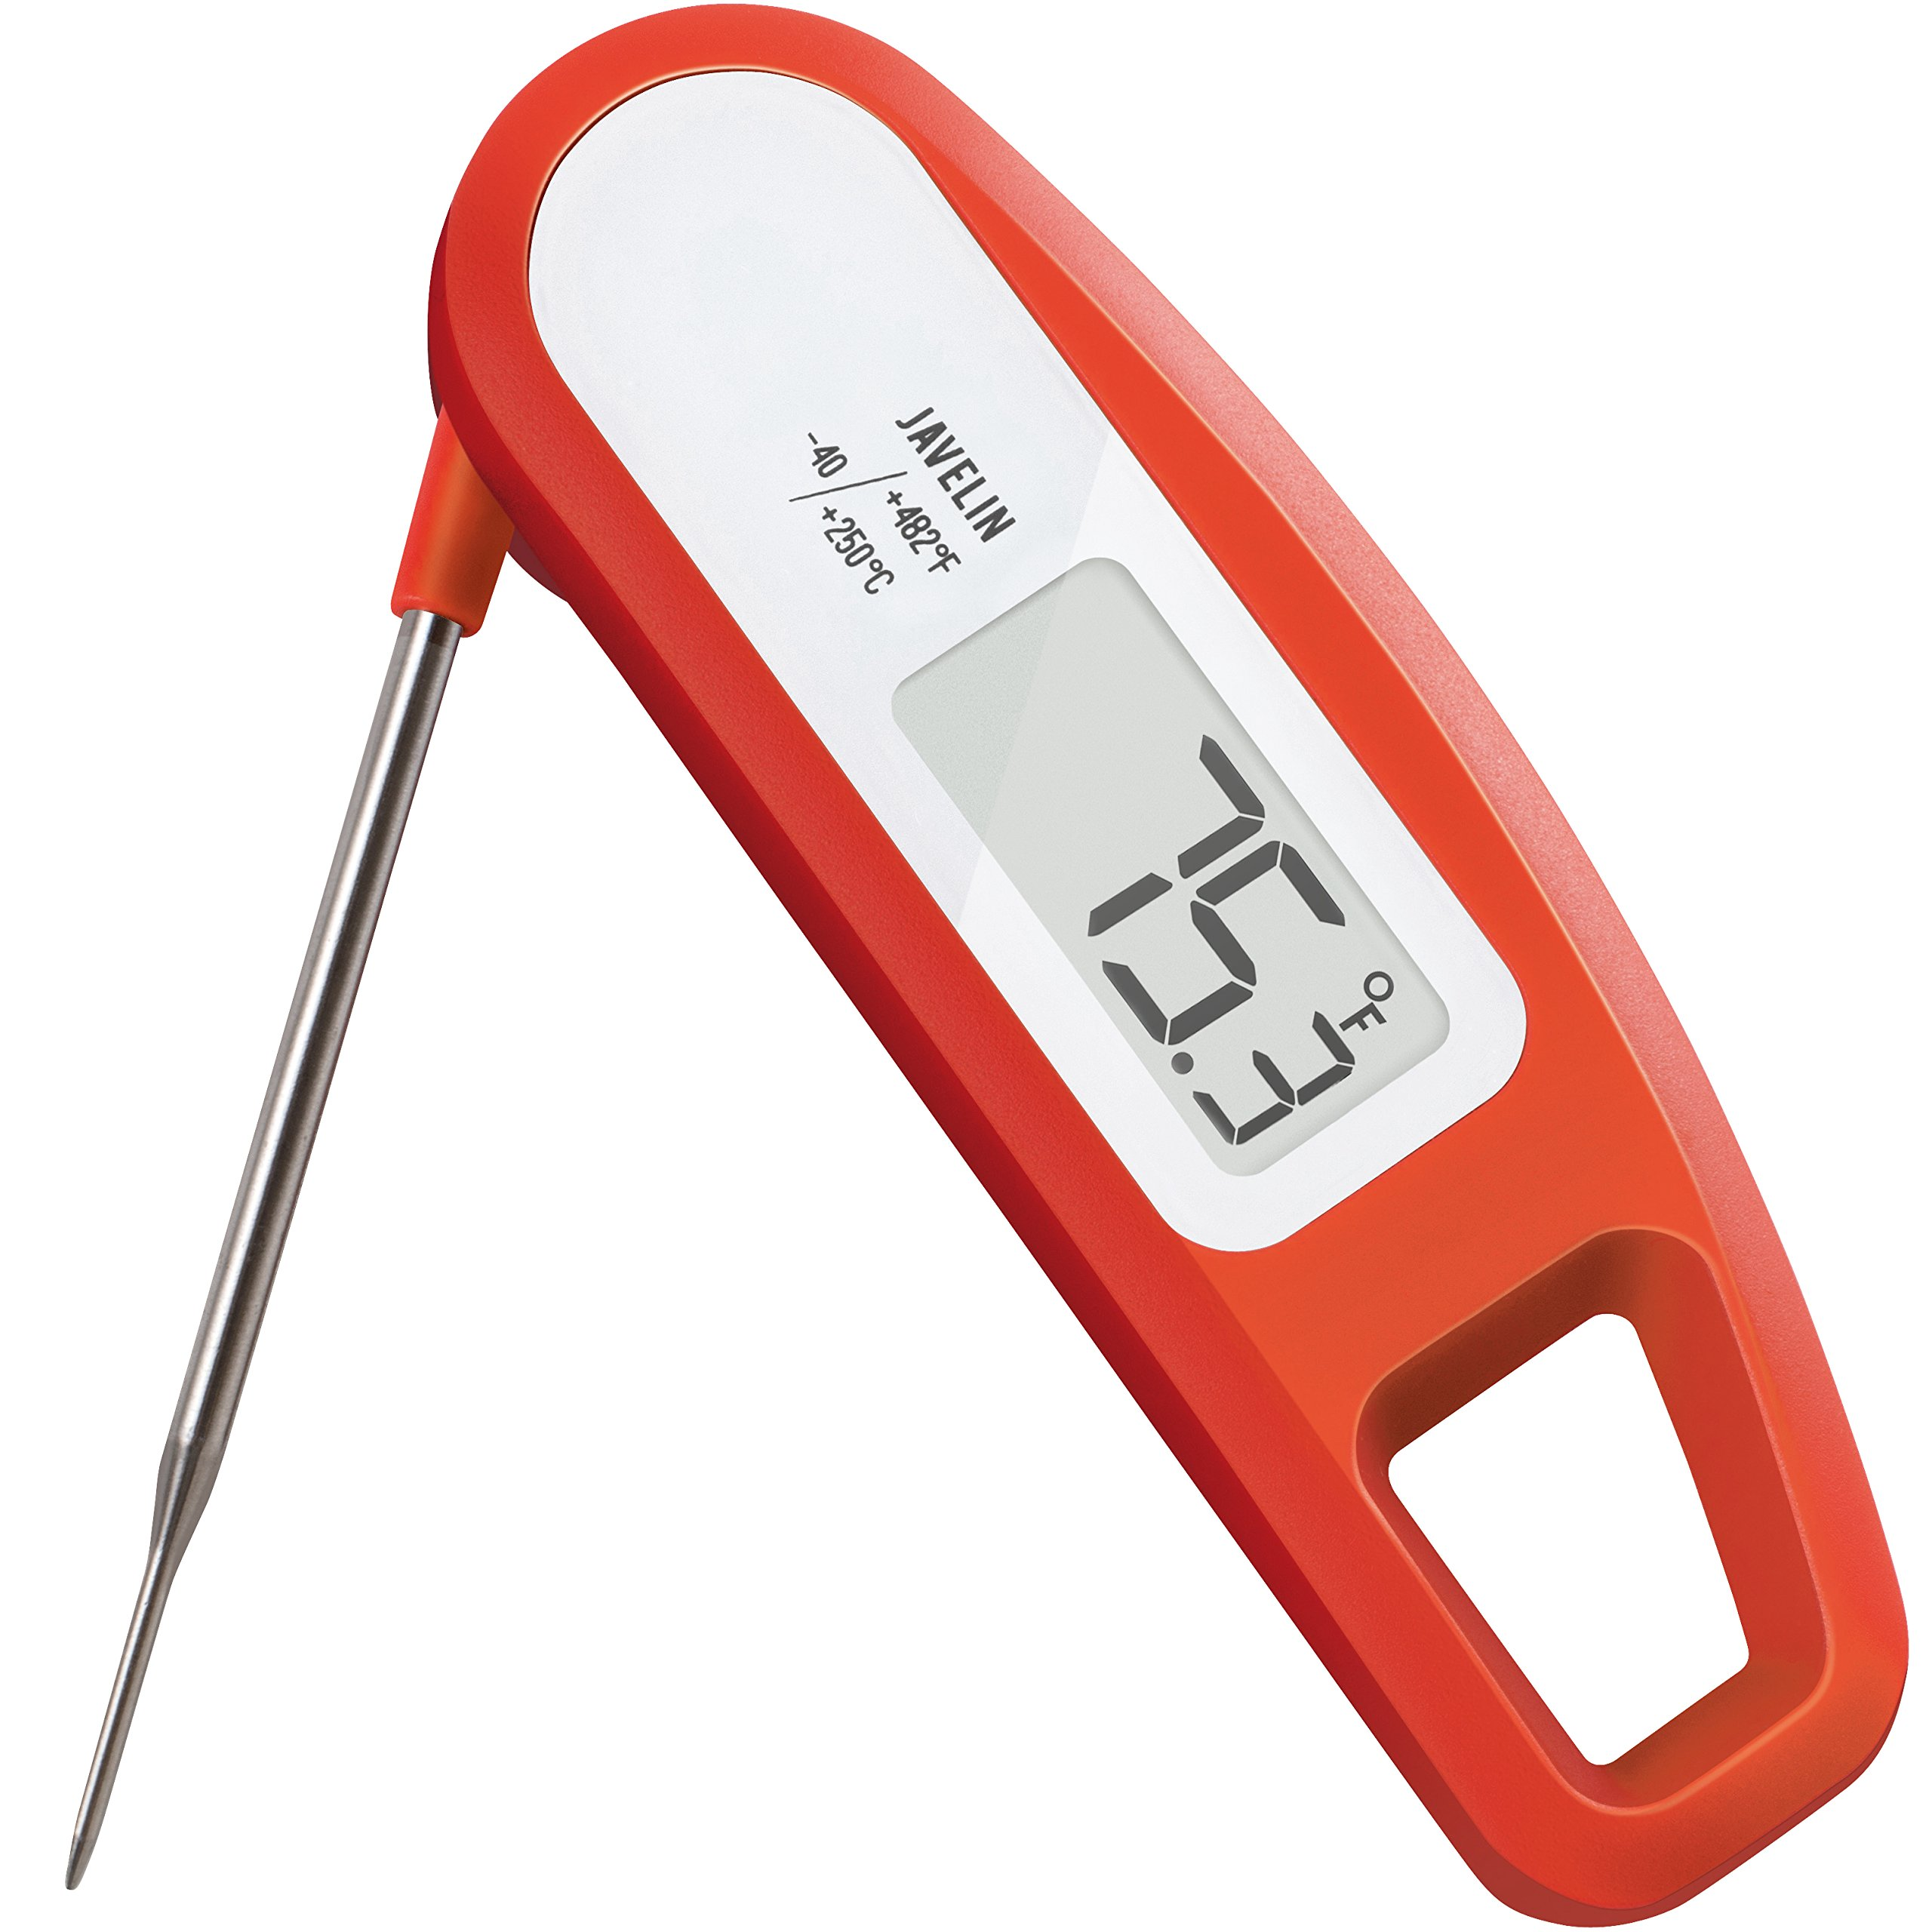 Lavatools Javelin Digital Instant Read Digital Meat Thermometer (Chipotle)